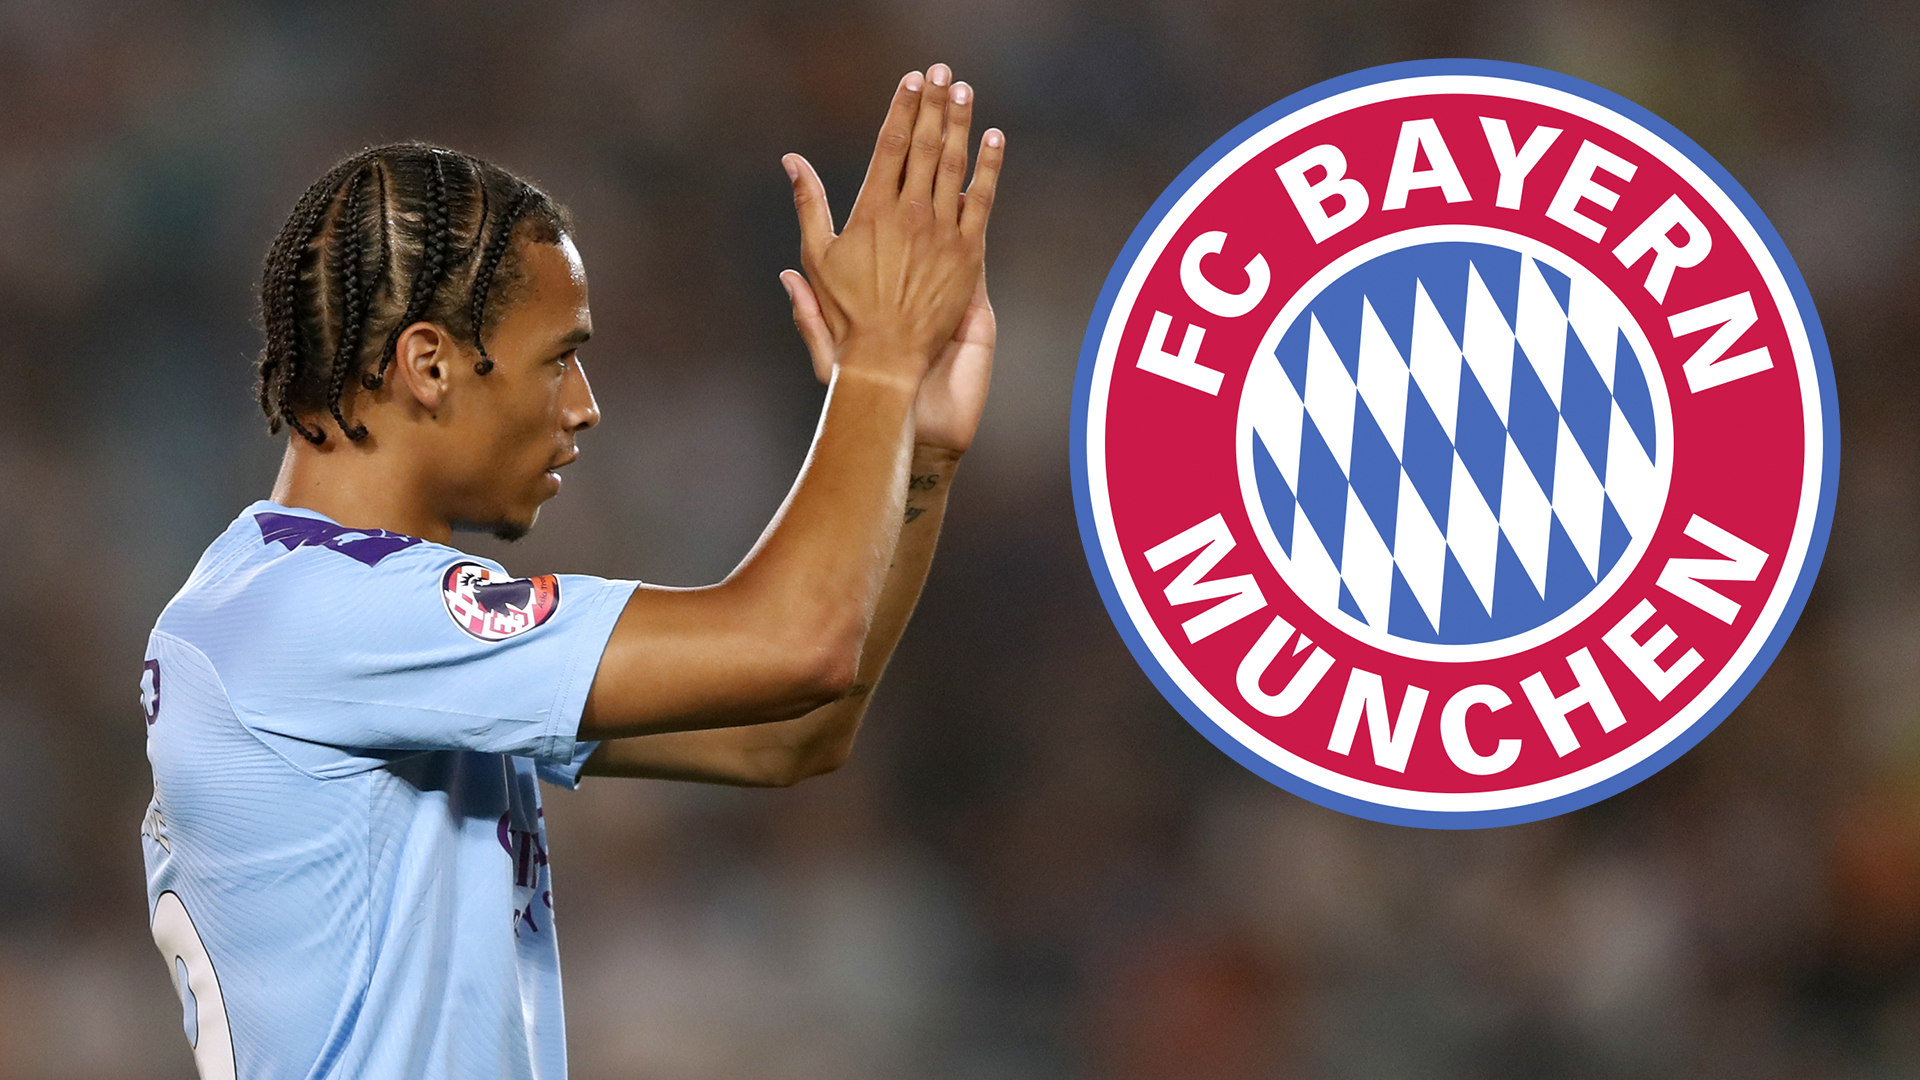 Bayern won't rule out fresh move for Man City star Sane